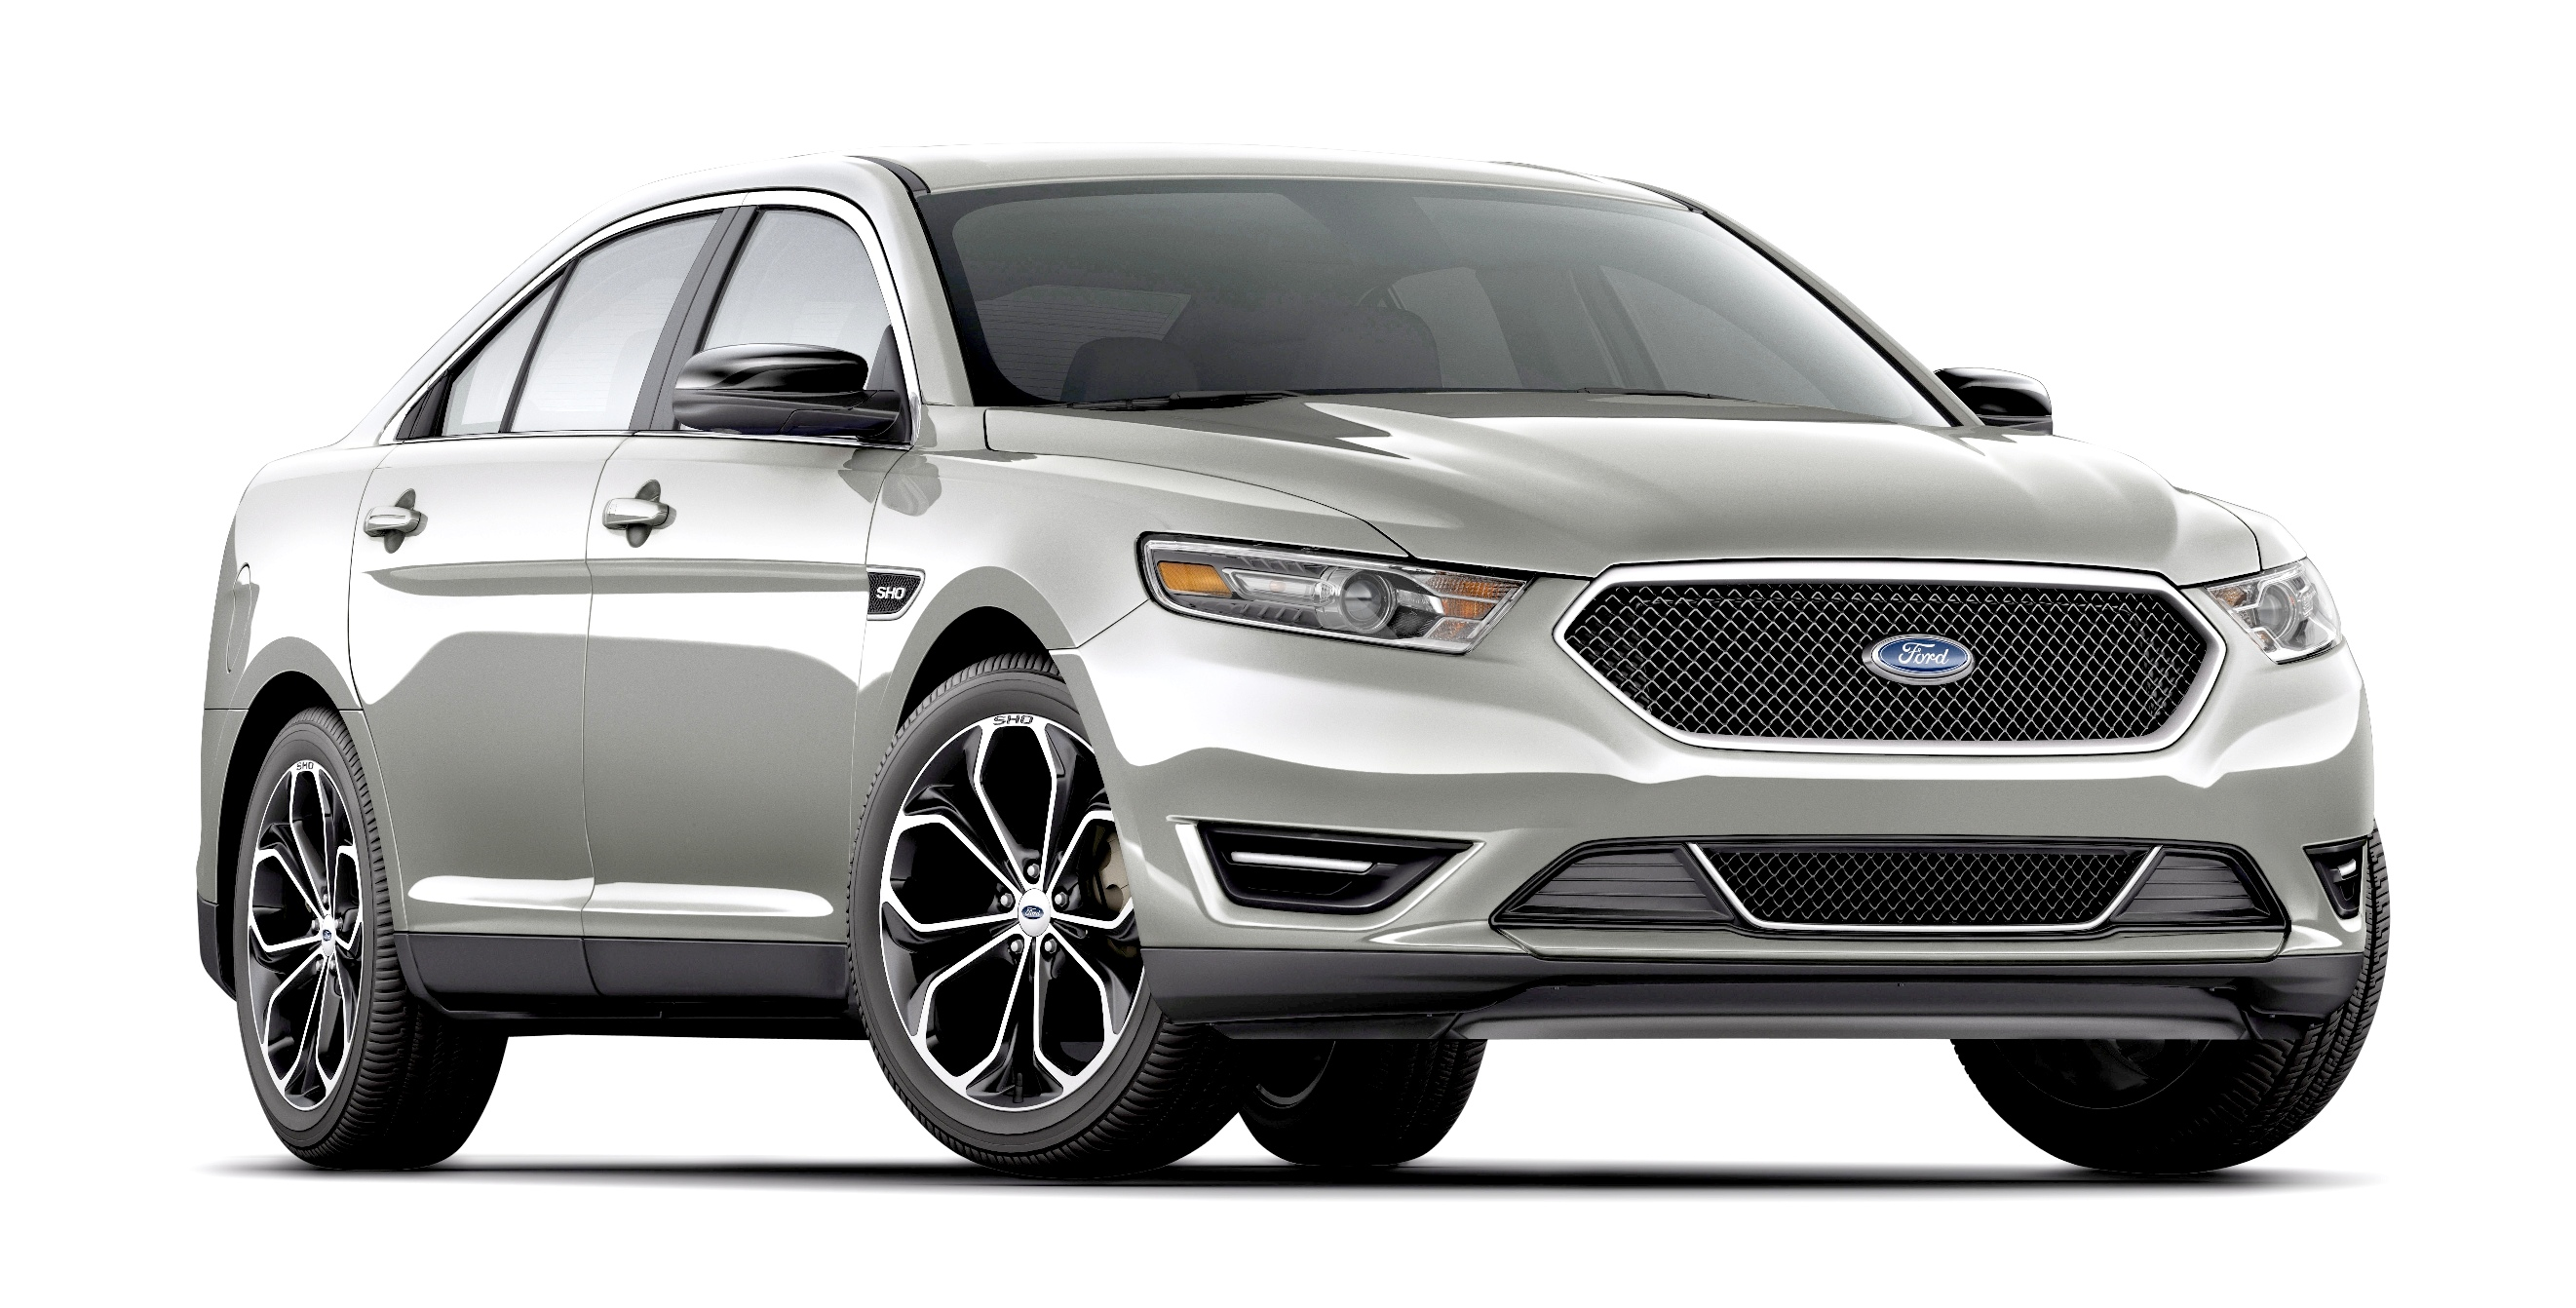 2014 ford taurus sho gallery 524236 top speed. Black Bedroom Furniture Sets. Home Design Ideas